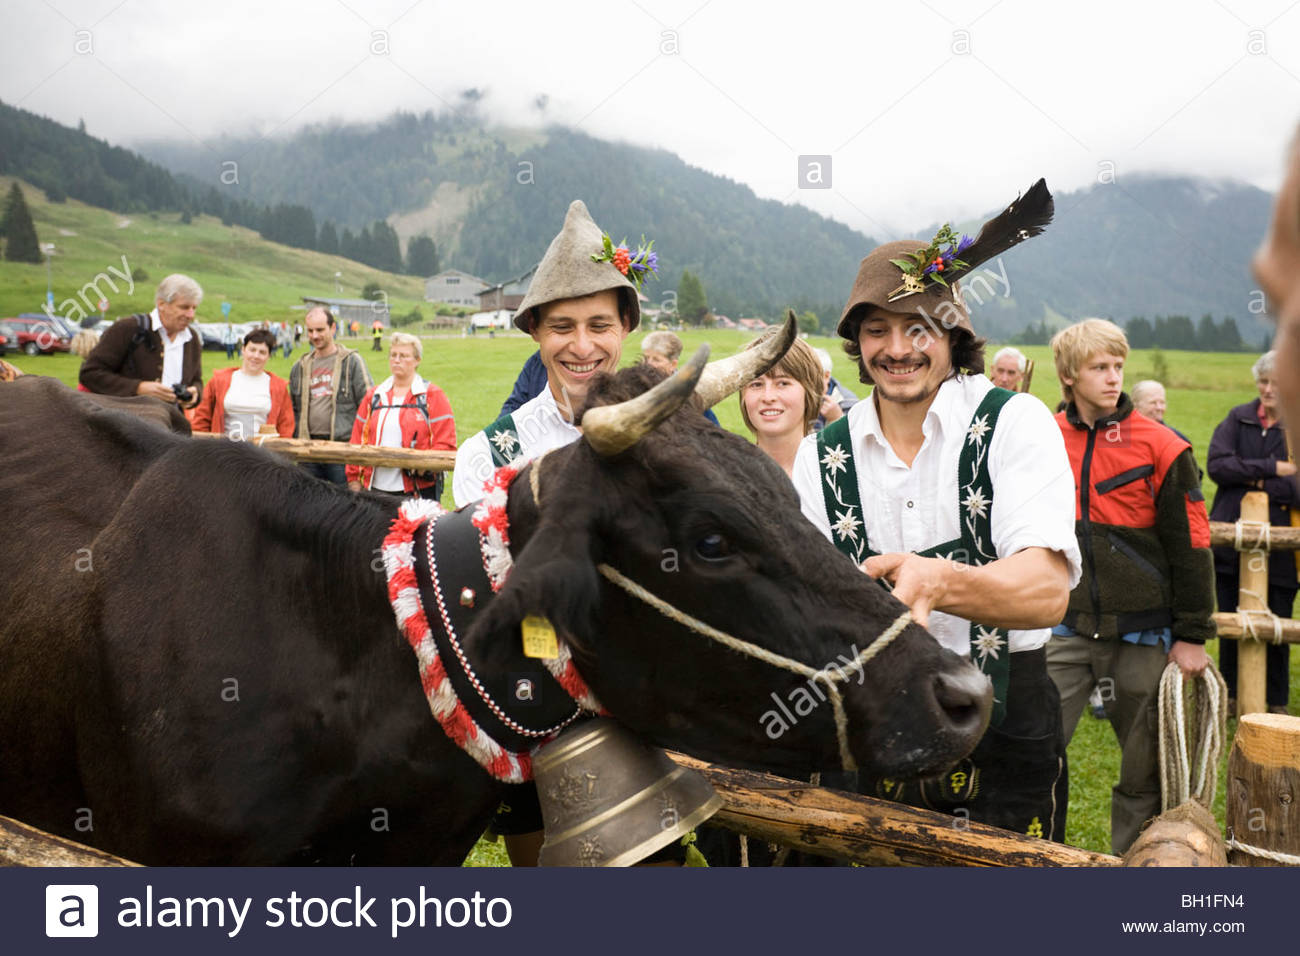 The herd of cattle from the Schwarzenberg Alp are being handed back to their owners, Cattle returing from the mountain - Stock Image